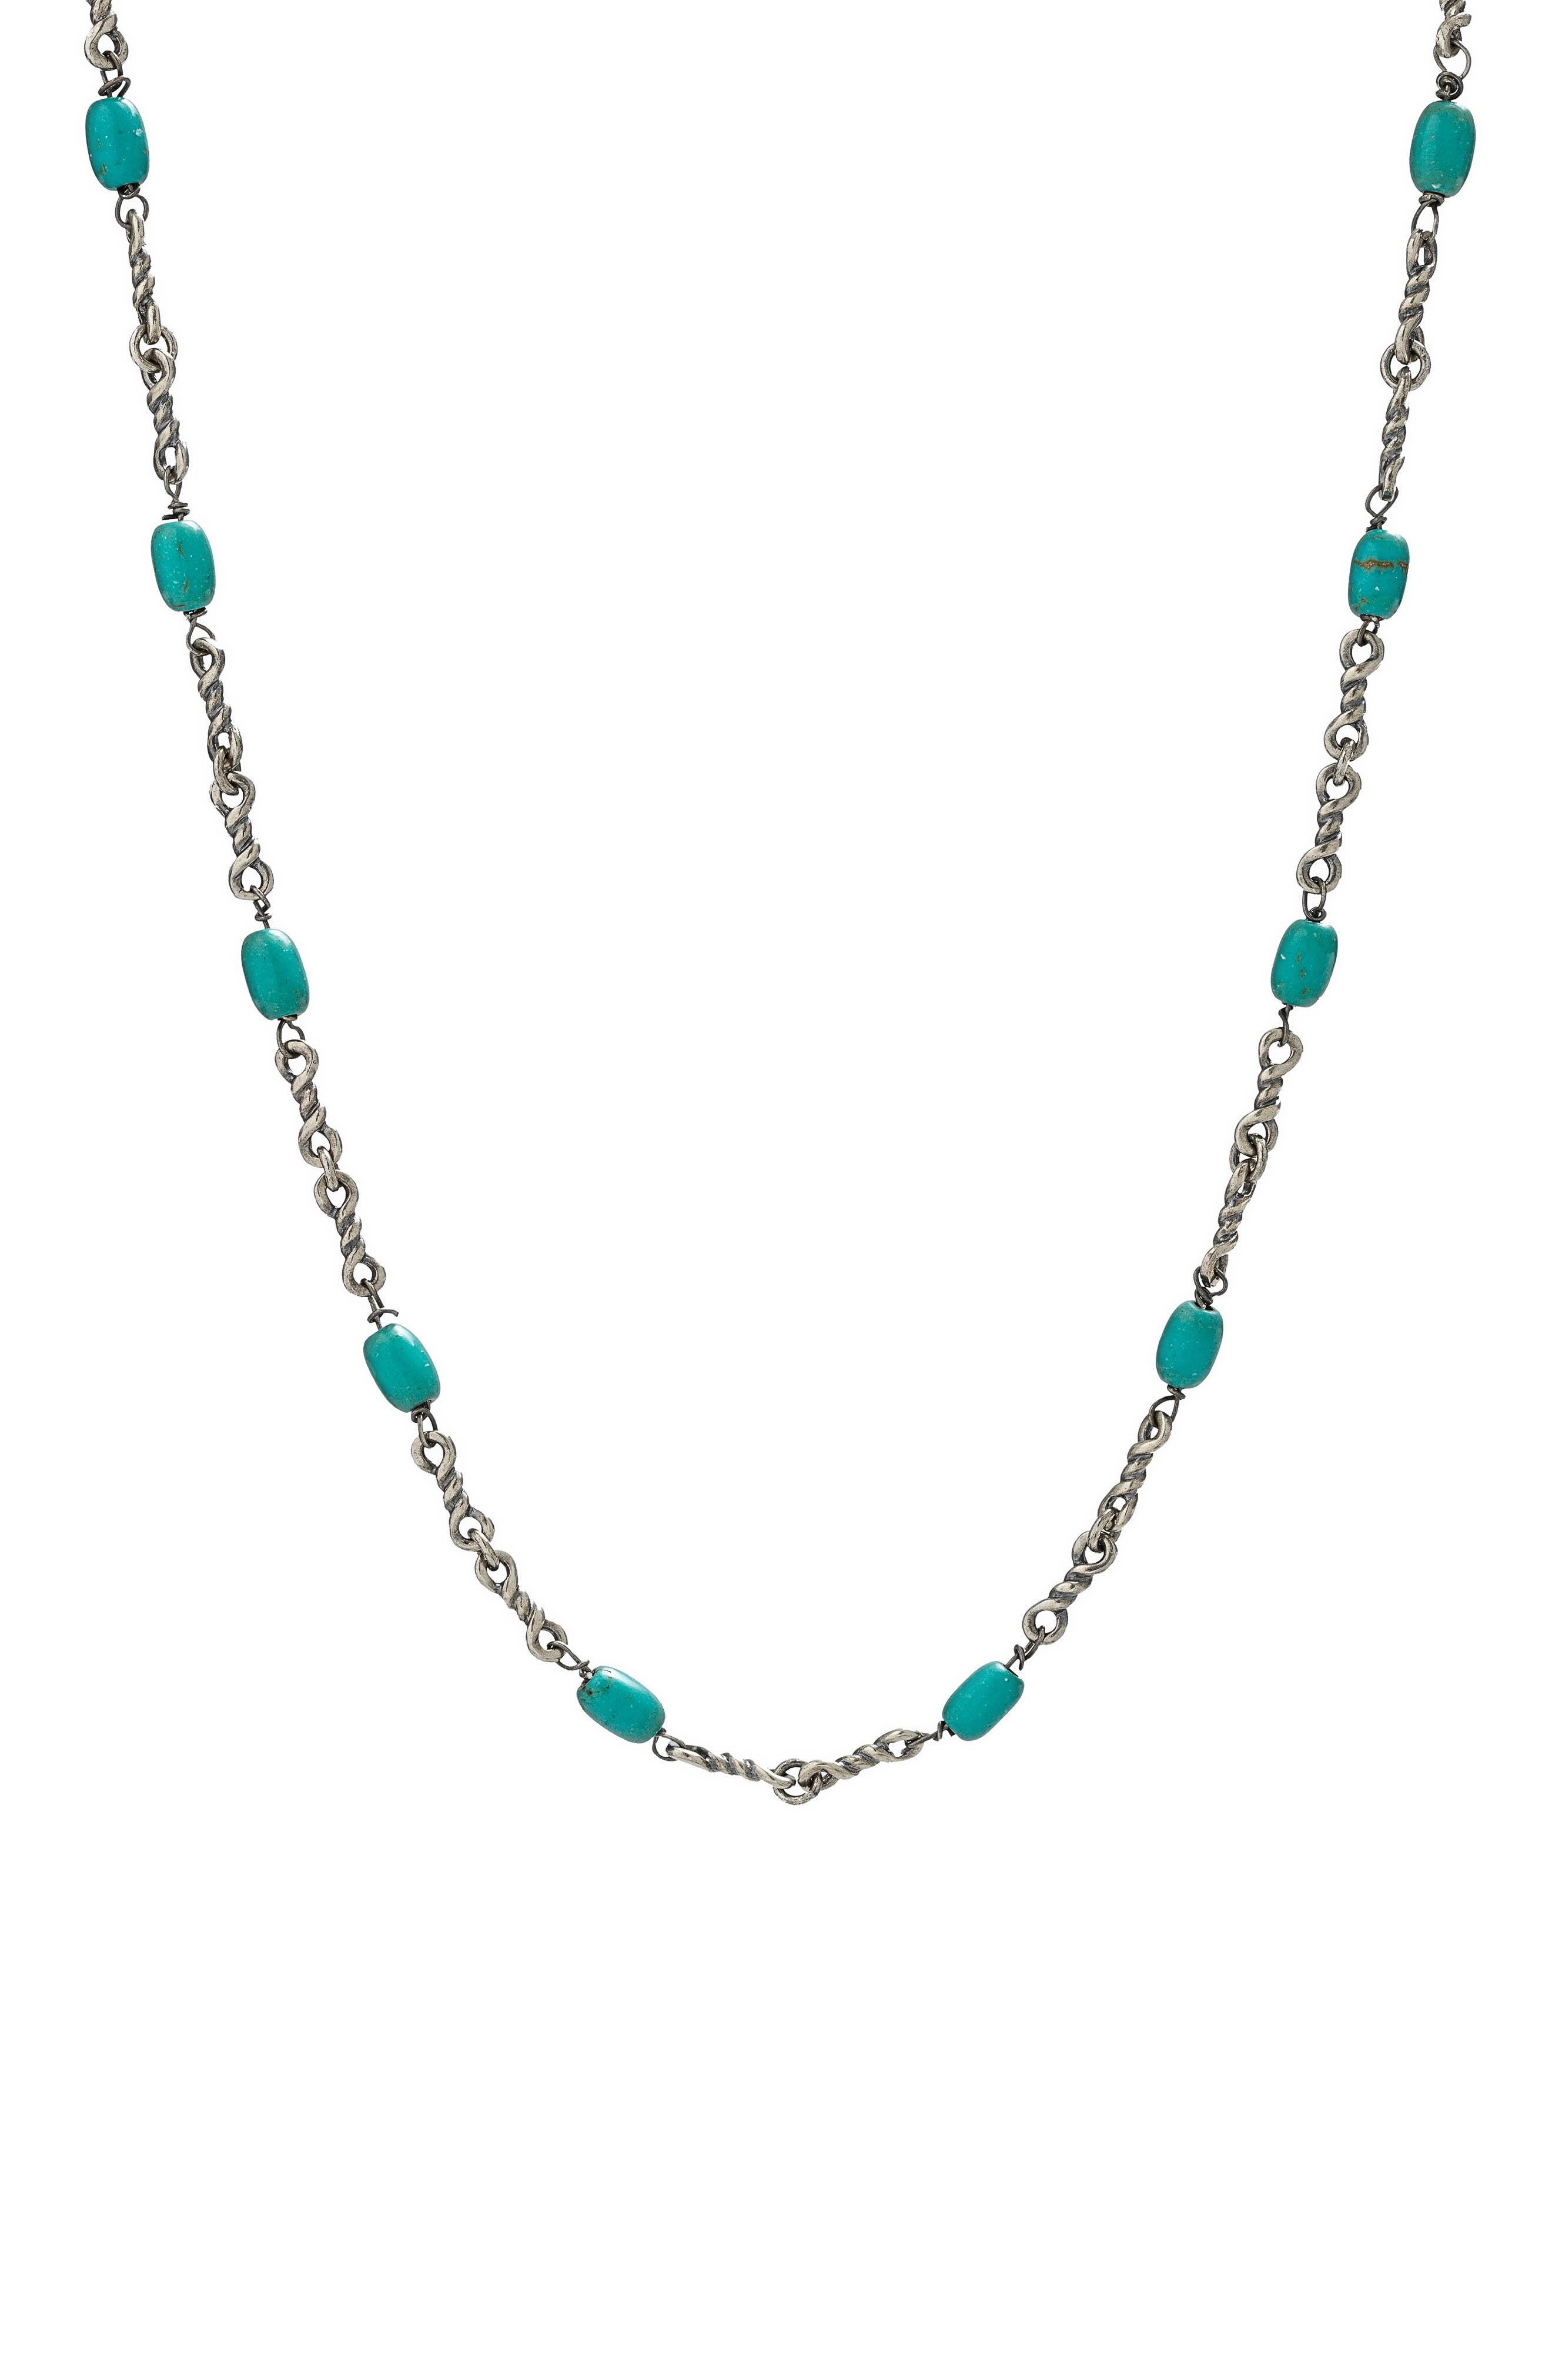 Men's Turquoise Twisted Cable Chain Necklace